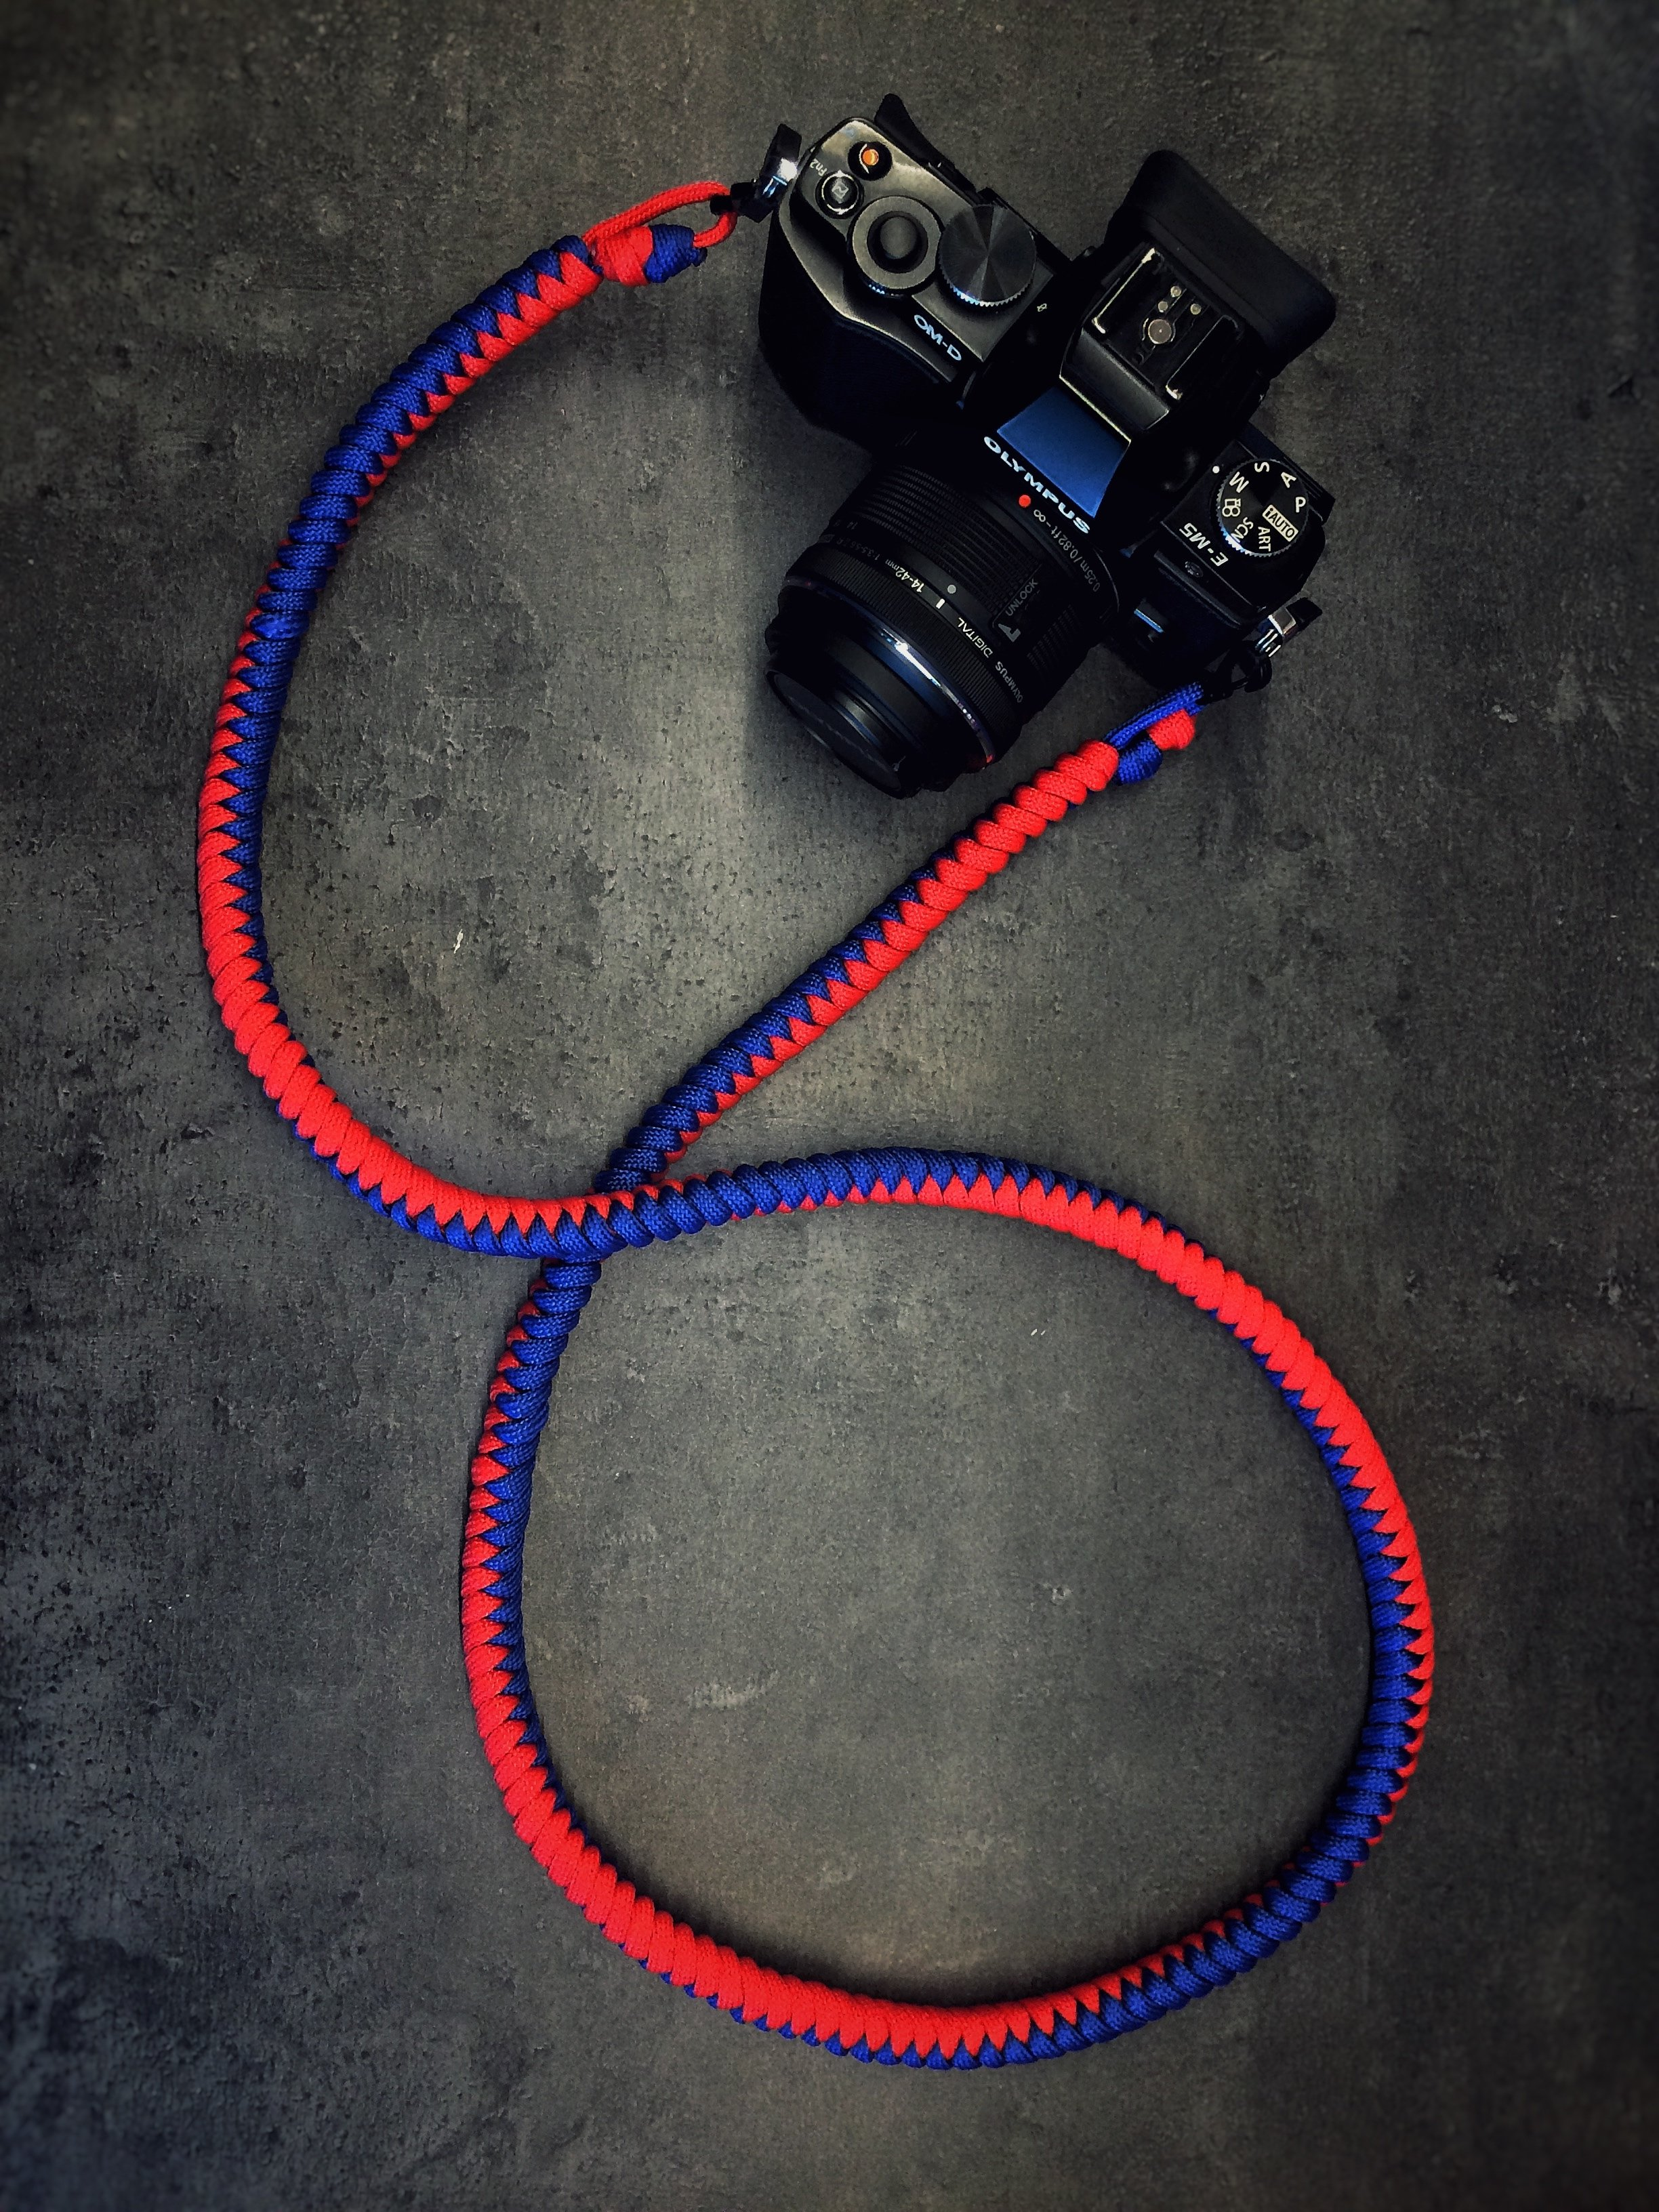 Camera Neck Strap - Blue/Red a.k.a. Tivoli